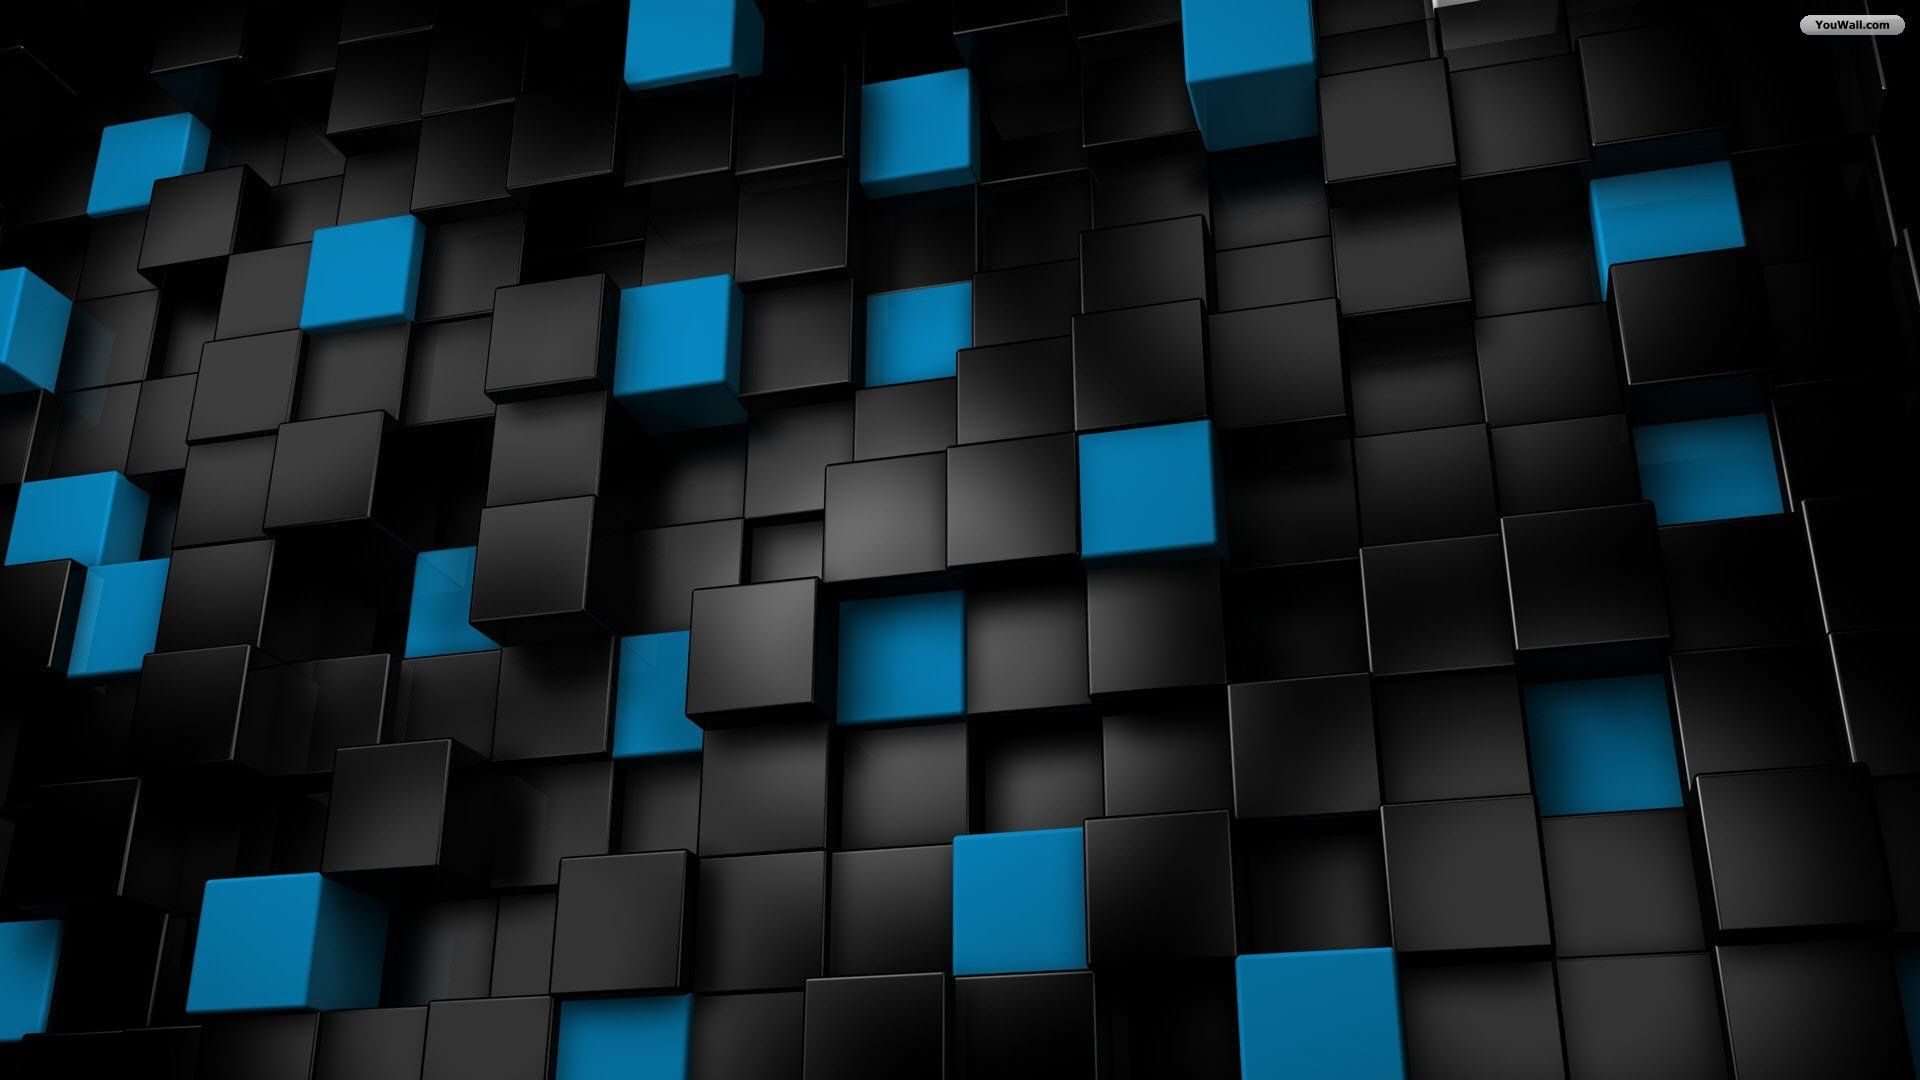 Black And Blue Cubes Wallpaper Black And Blue Wallpaper Cool Blue Wallpaper 3d Cube Wallpaper